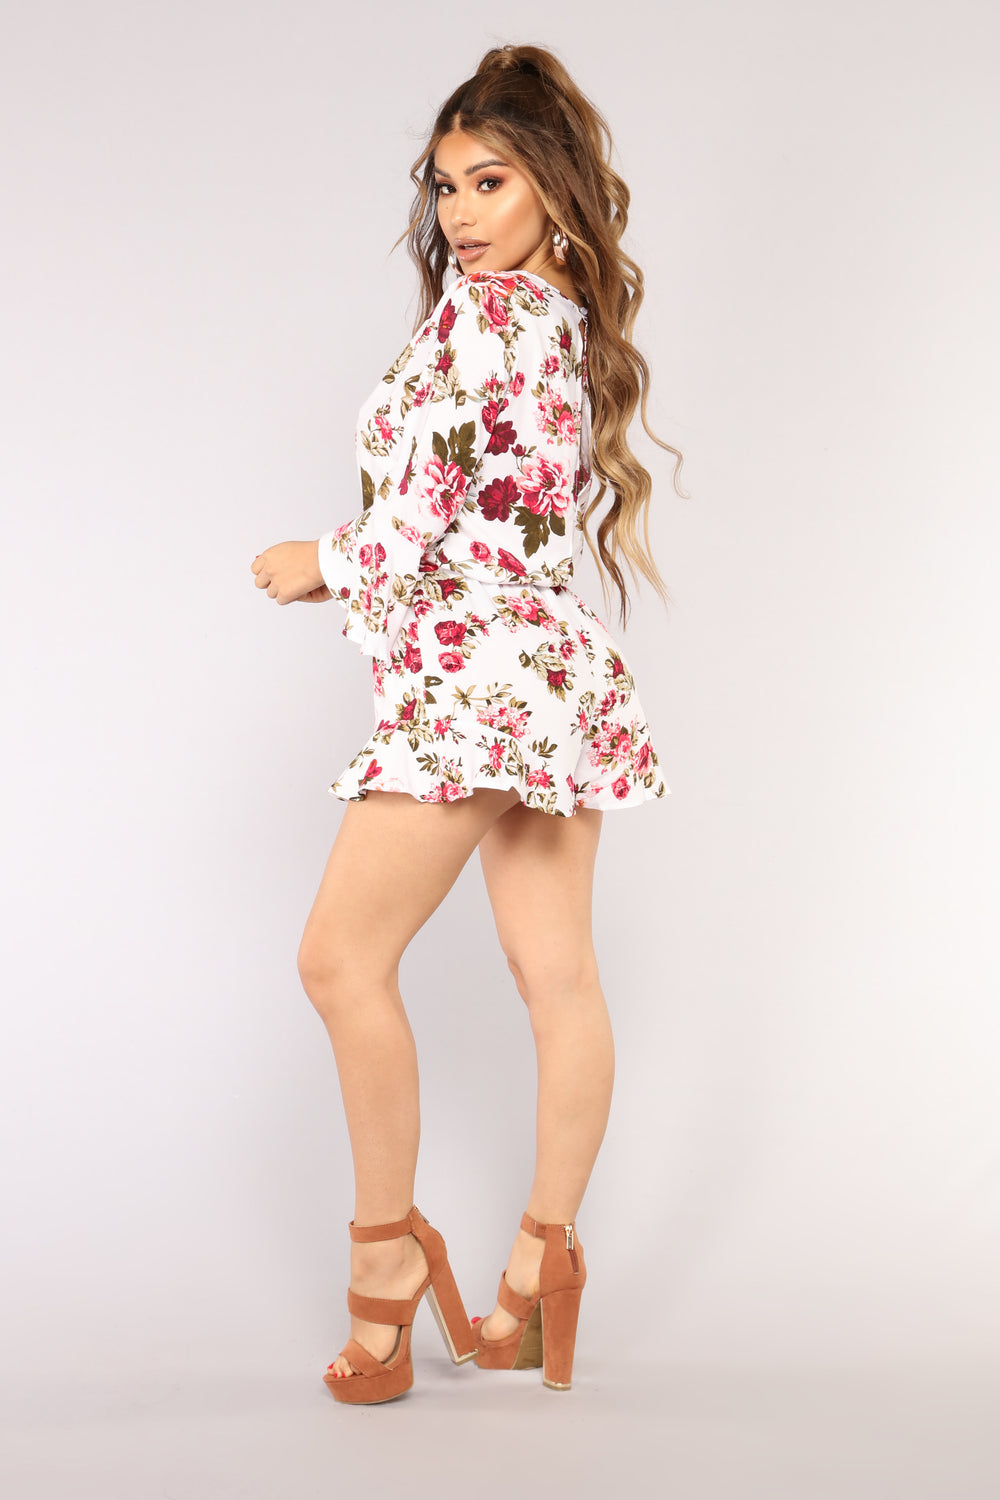 Cute sexy rompers and jumpsuits for women and juniors. Fresh looks from new designers. Free shipping over $ Be unique! x. Free Shipping Over $50 & Free Returns! See Details. Free Shipping Over $50 & Free Returns! See Details Shop By Lulus Label. Brands We Love. Gift Cards.